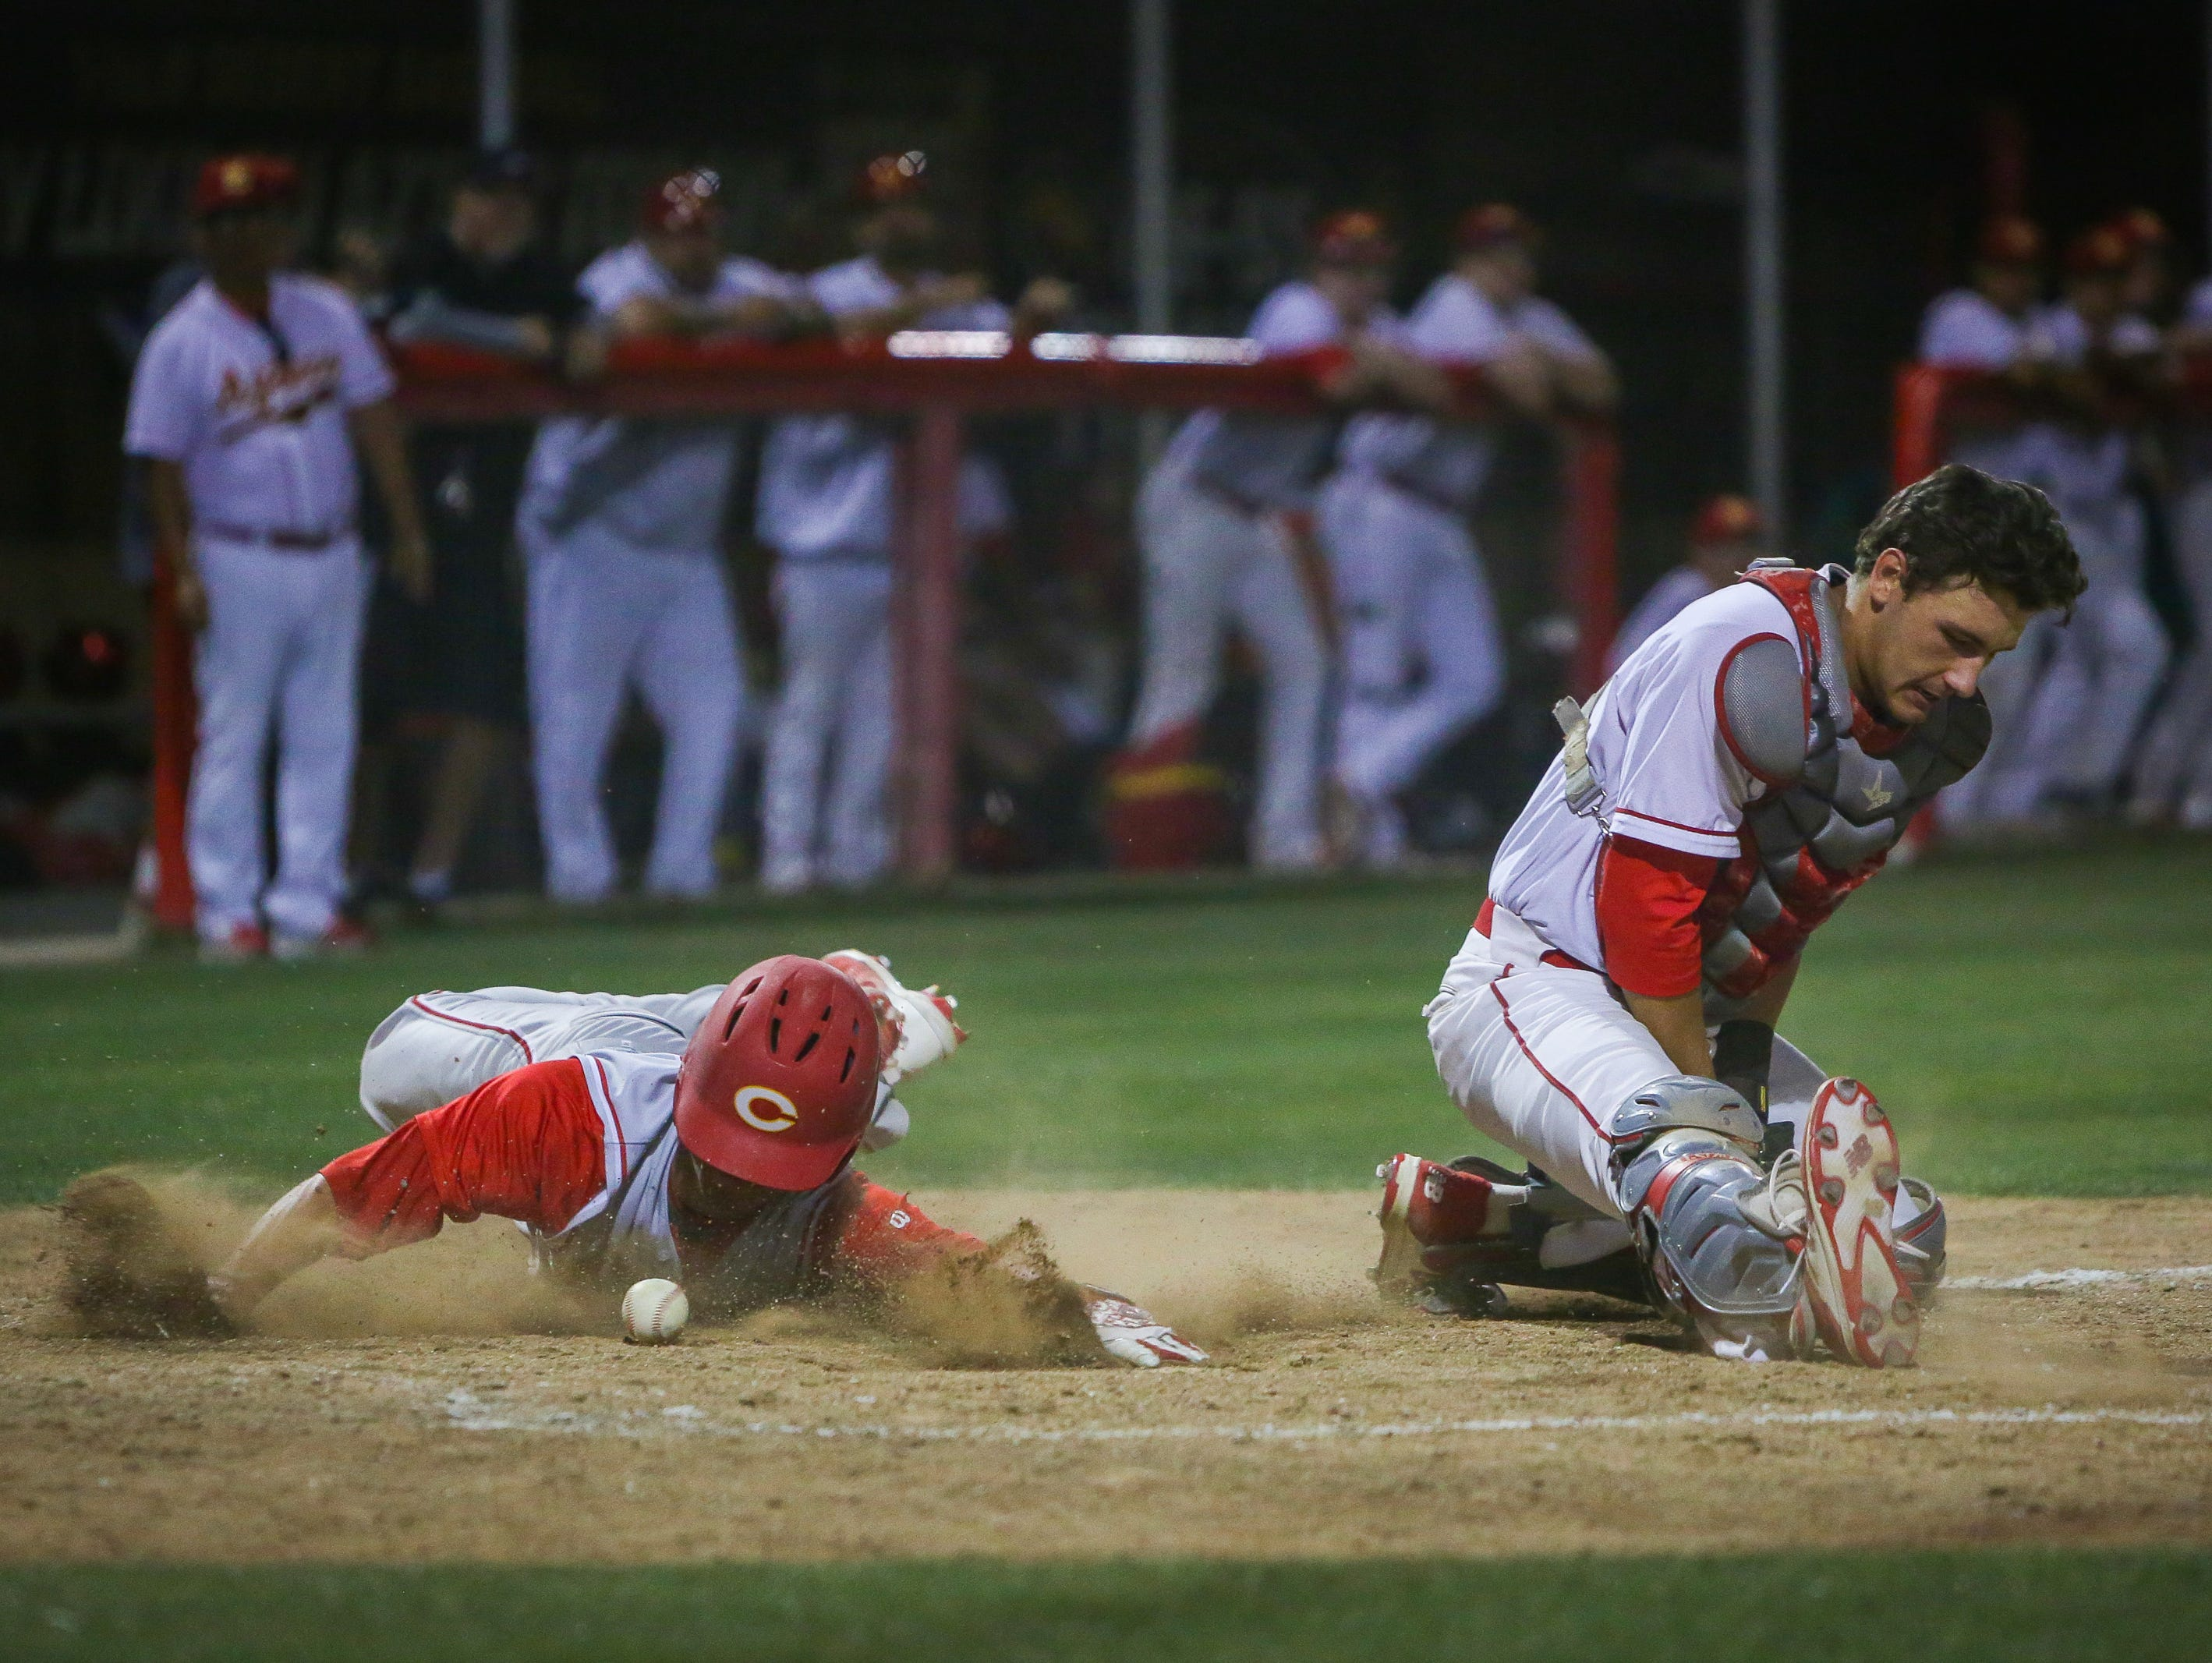 Corona's Chase Robison slides and scores.